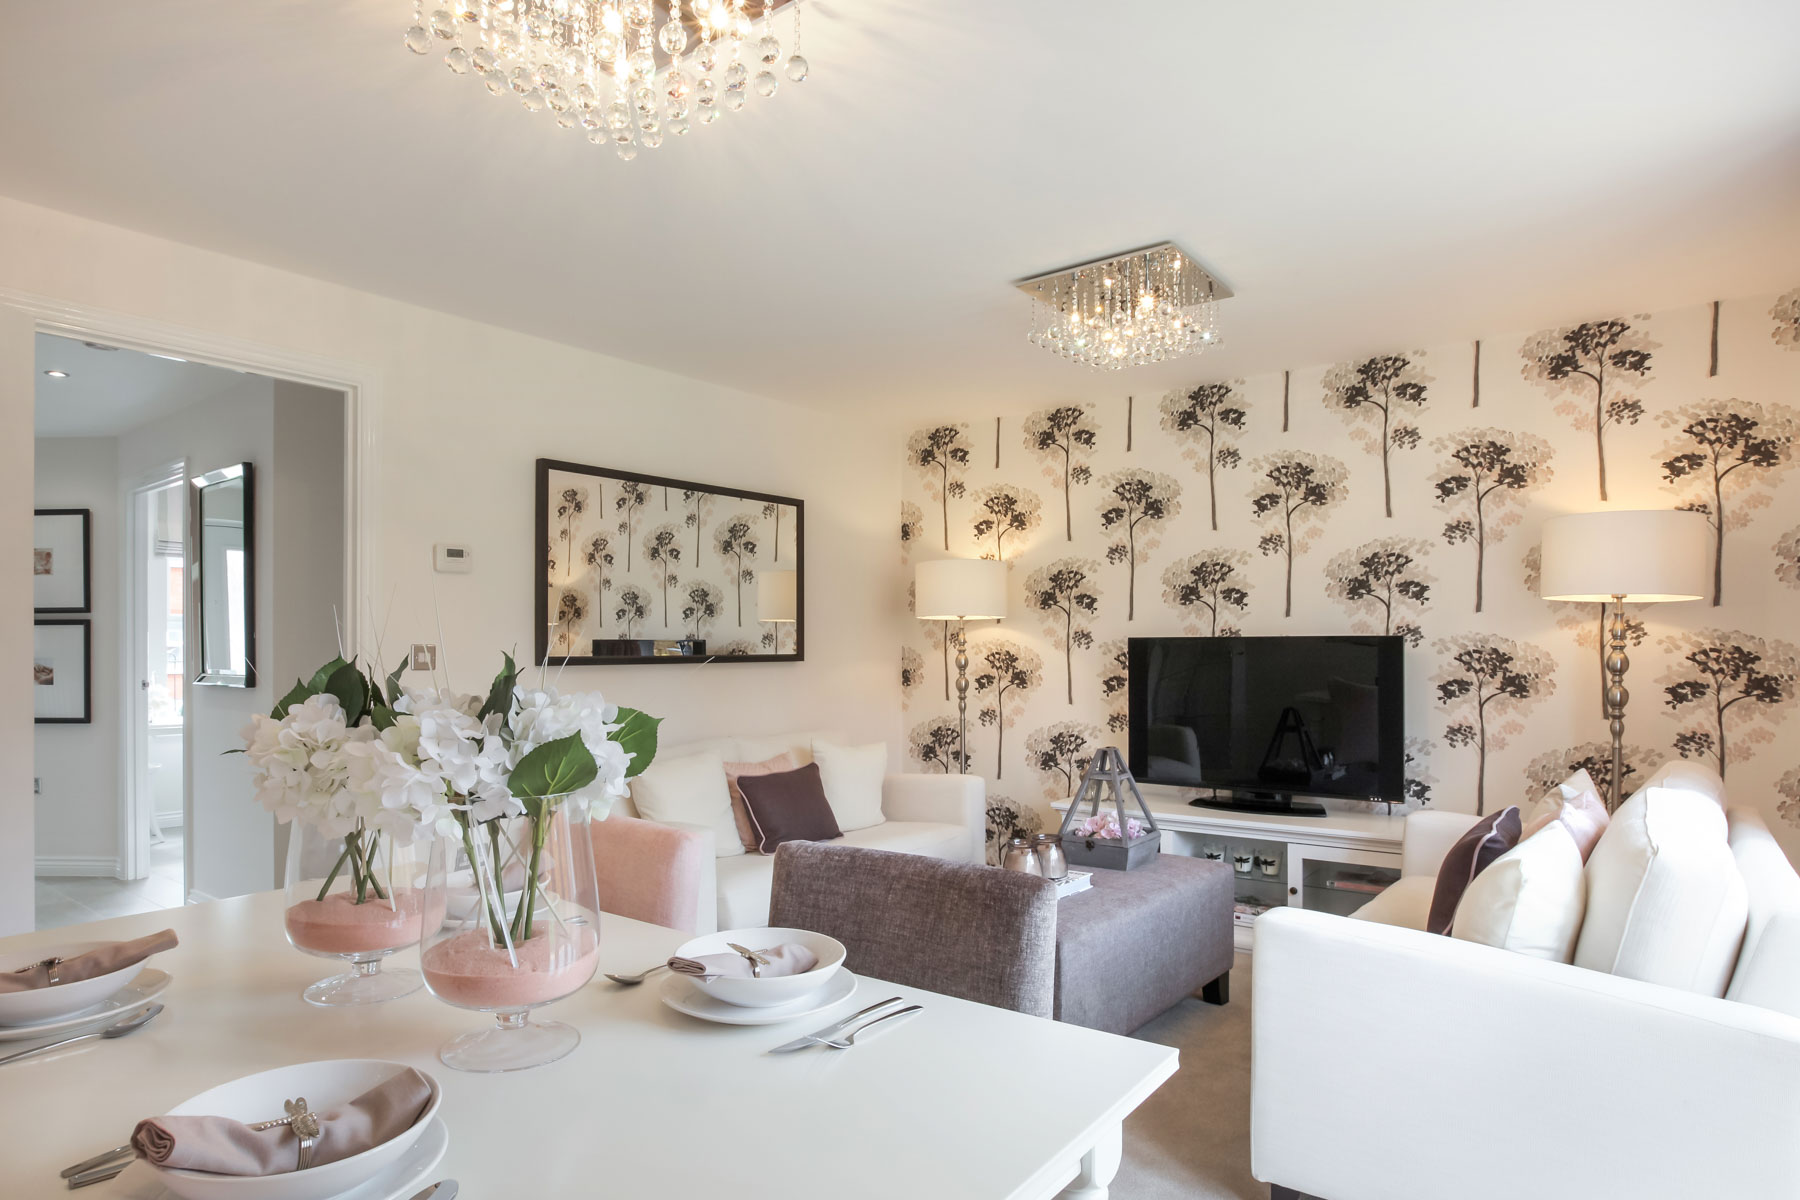 TW Exeter - Copleston Heights - Flatford example living room 2